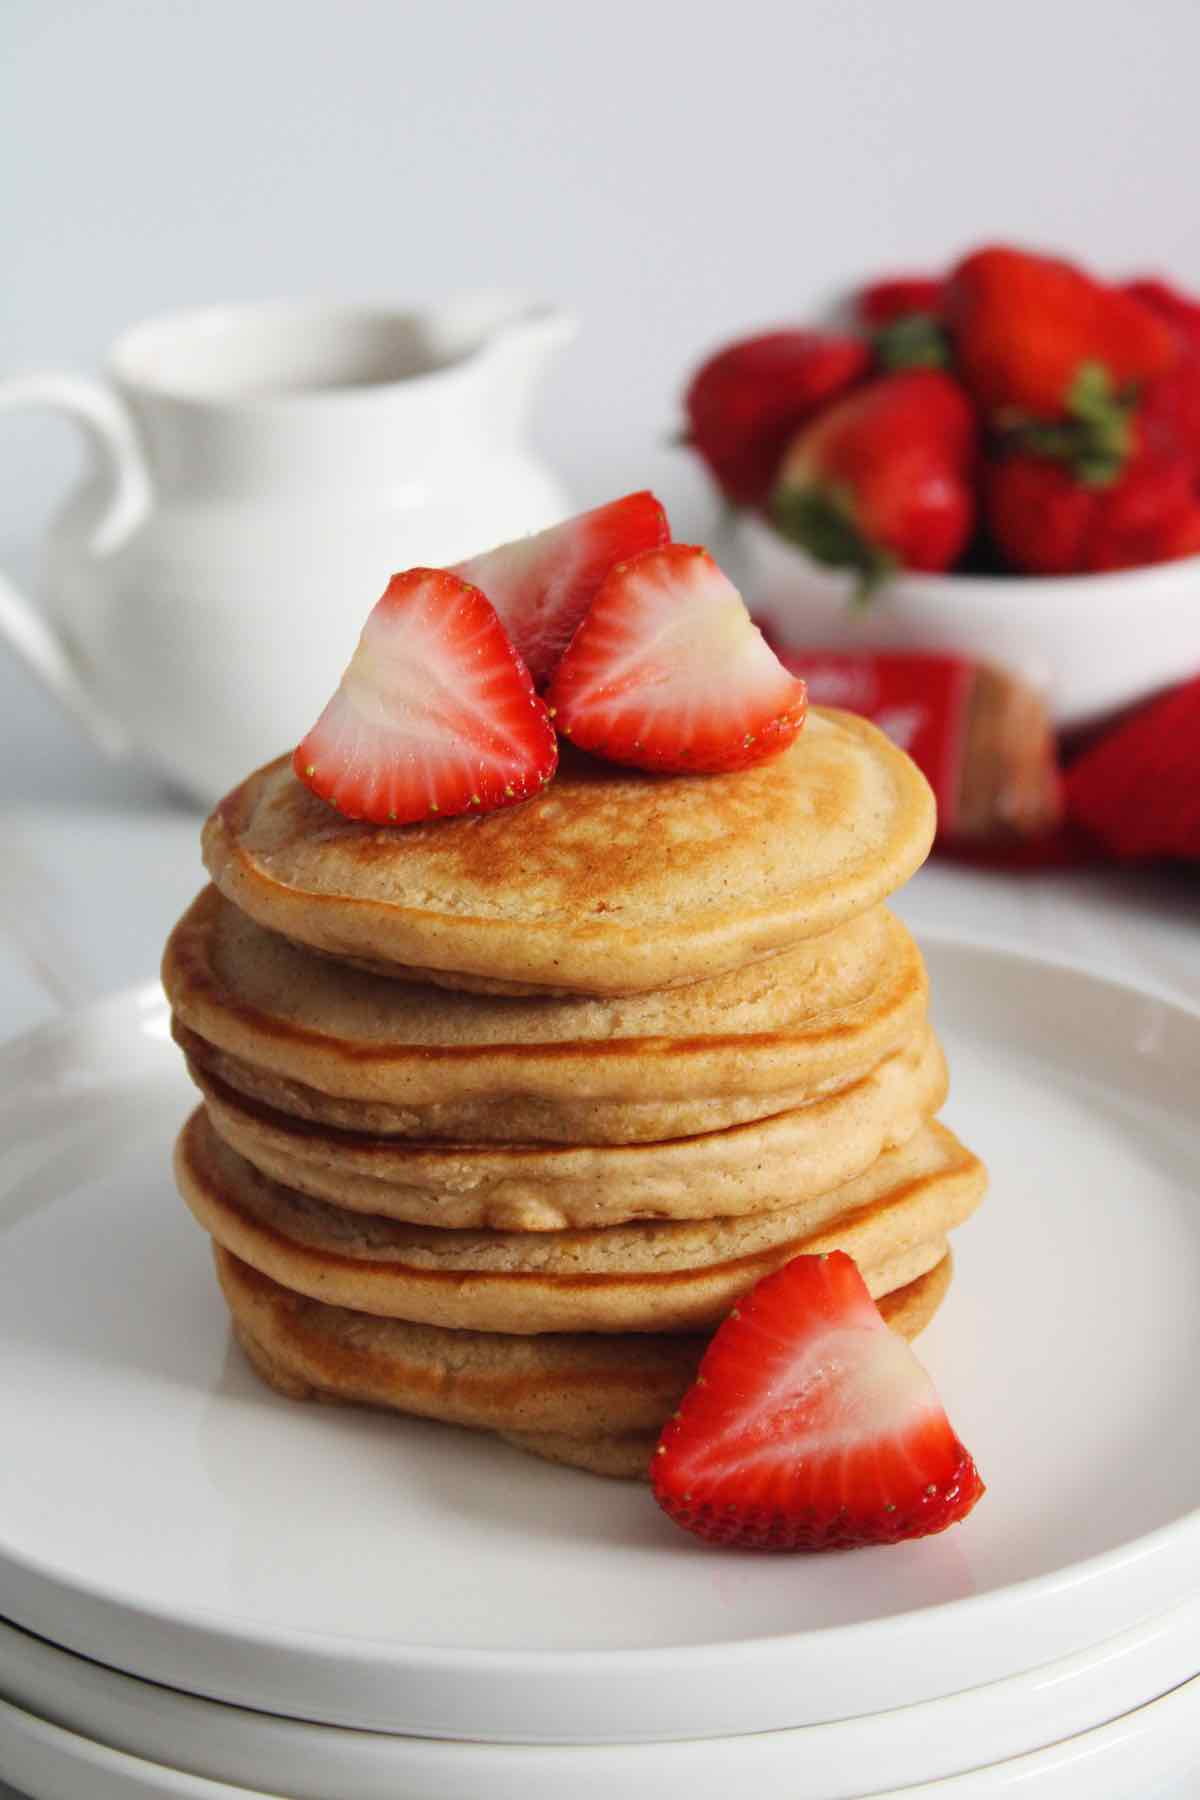 Pancakes made with buttermilk for breakfast.